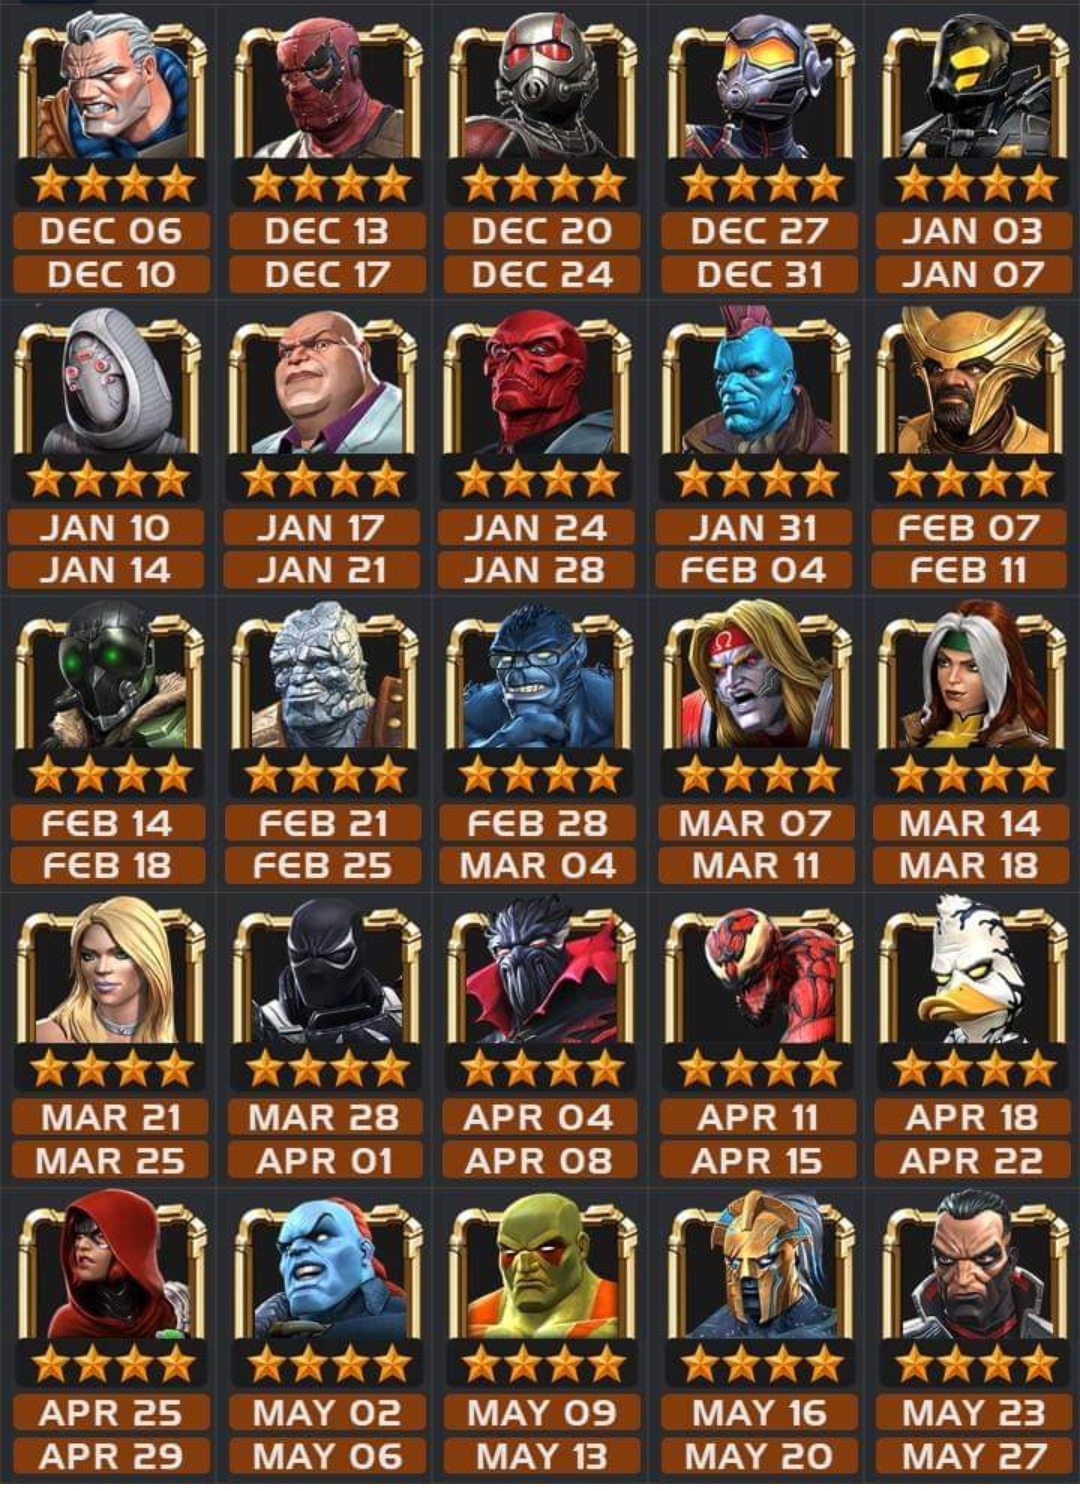 Mcoc Calendar February 2020 4* Basic Arena 2019; Champs with low cut offs — Marvel Contest of